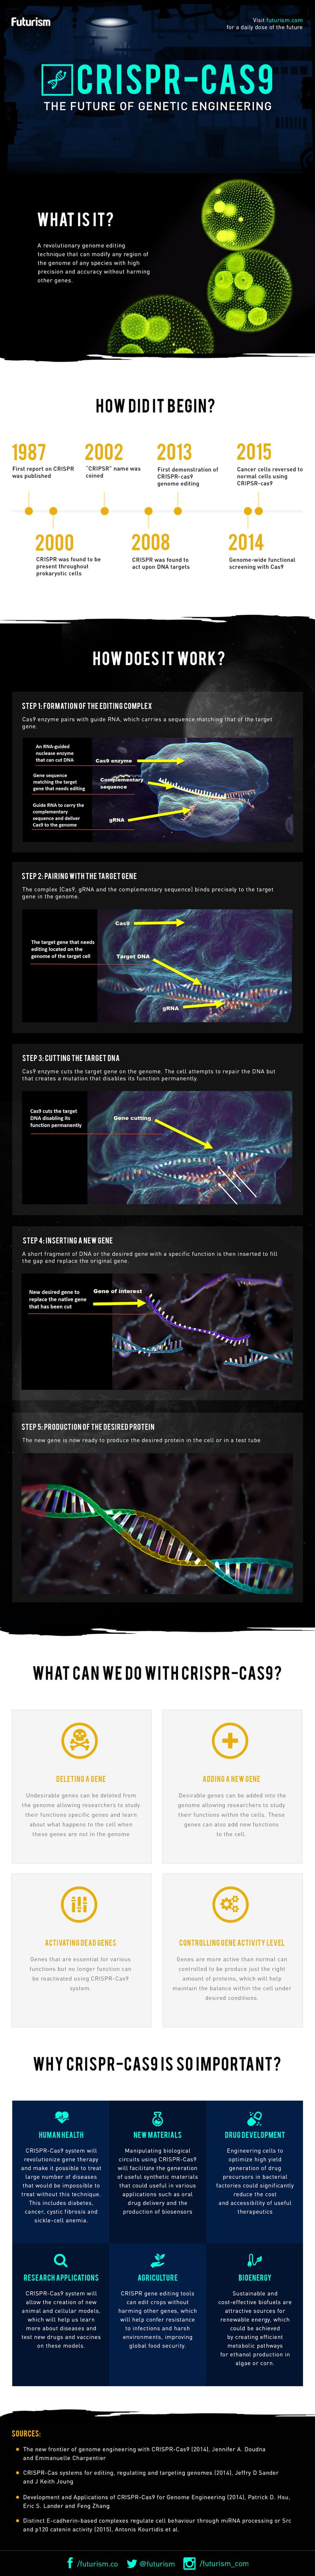 para usar en una clase de la última lección de Bio de este curso: CRISPR has been heralded as the biggest scientific breakthrough of 2015 across the board. This infographic will help you understand why.